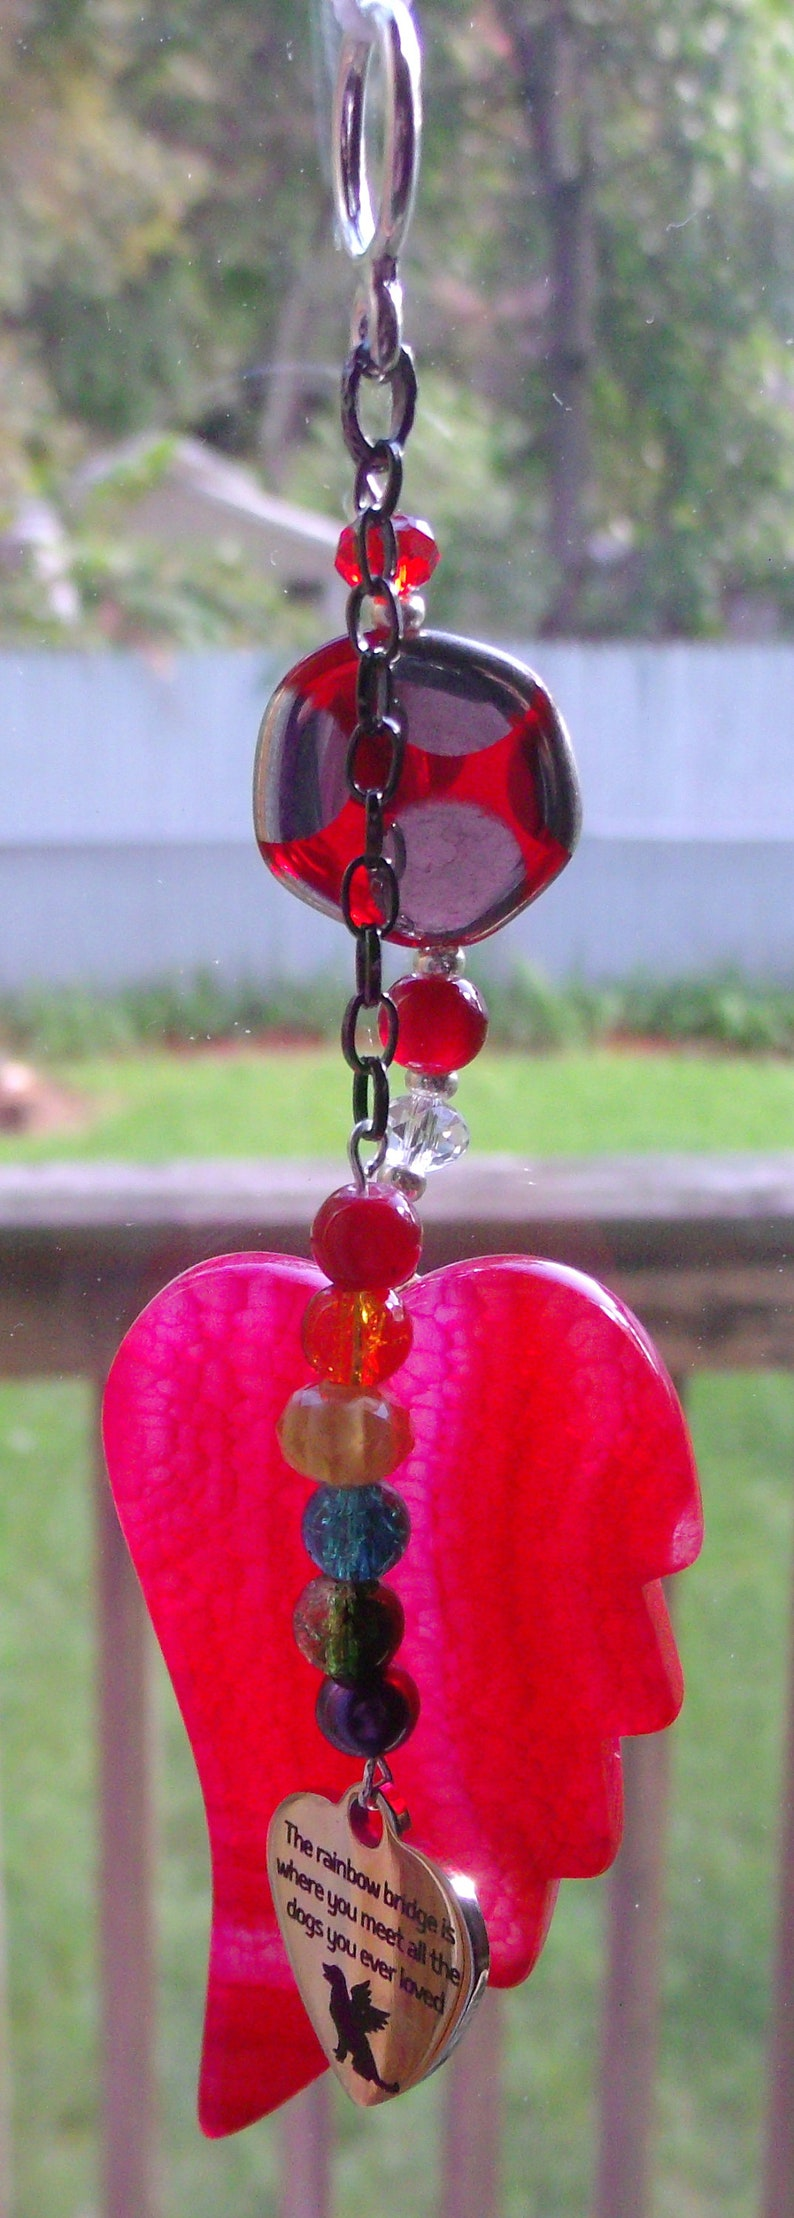 agate pendant Pet sympathy gift bright red ornament dog loss fur baby memento window ornament Pet loss gift angel wing